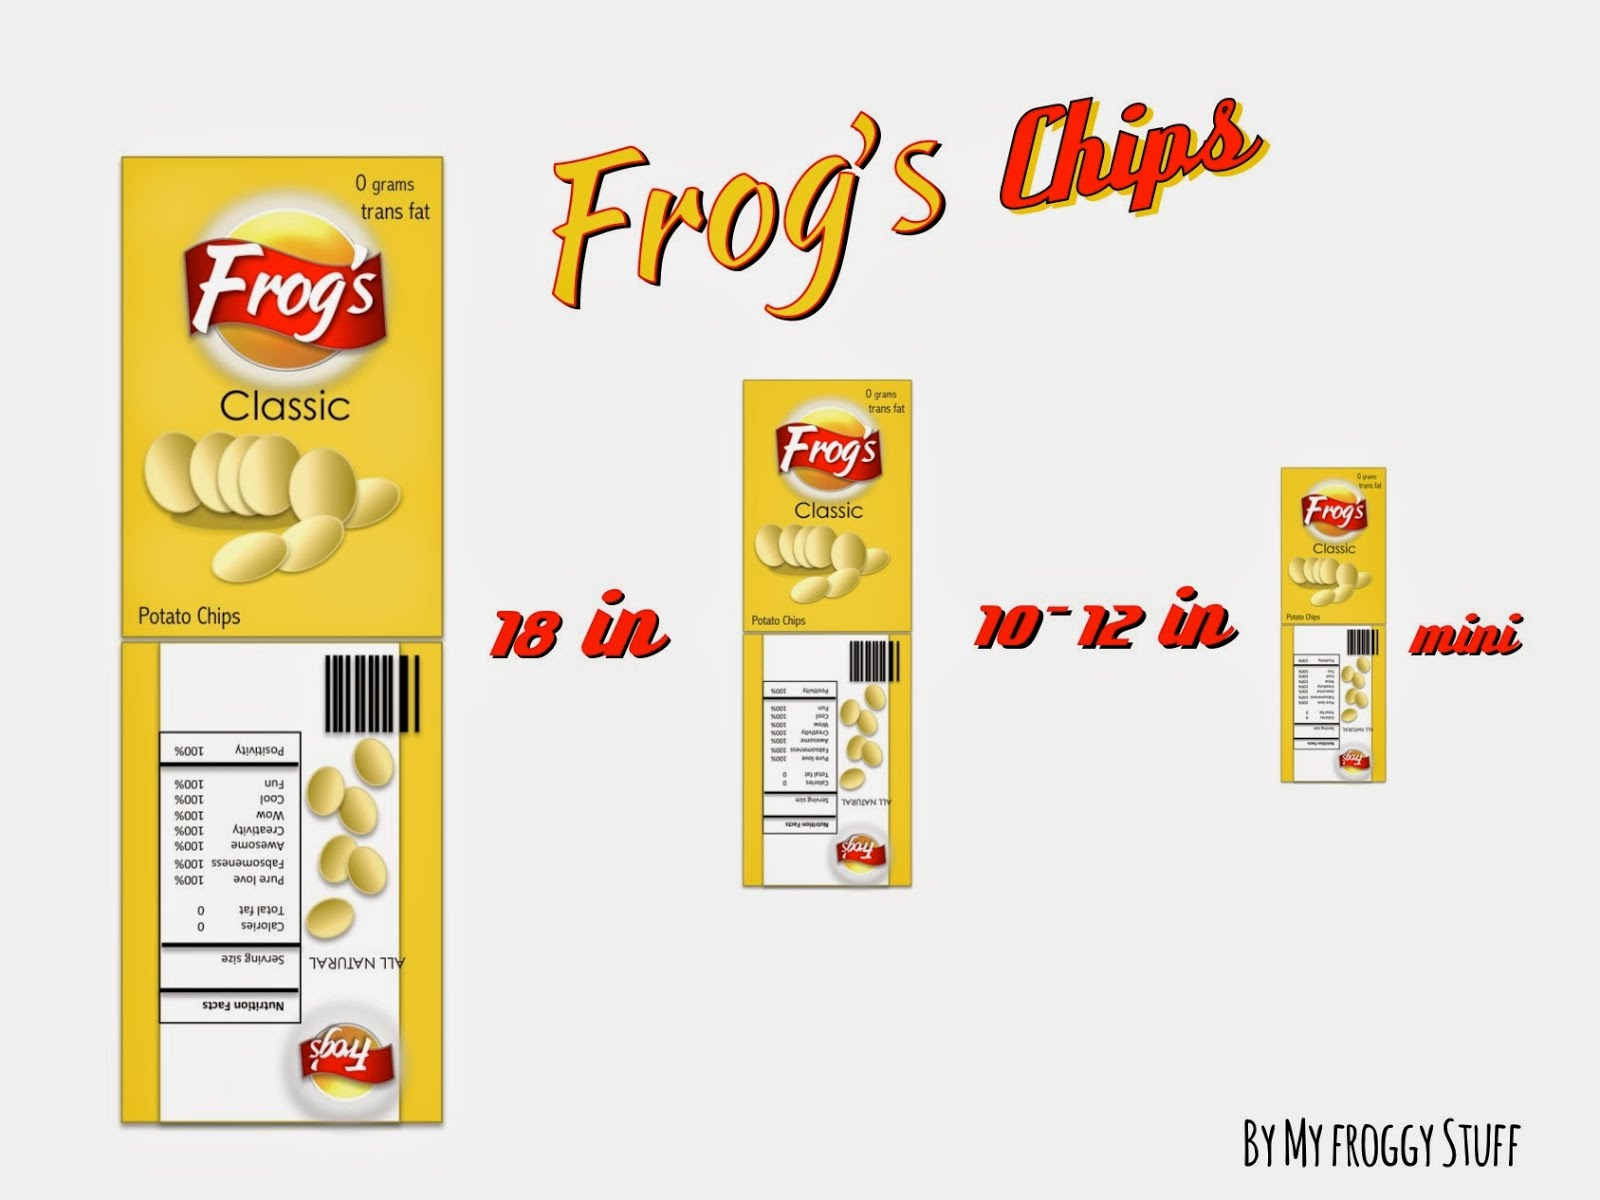 image regarding My Froggy Stuff Printable referred to as My Froggy Things: Printing Printables Contains Altered